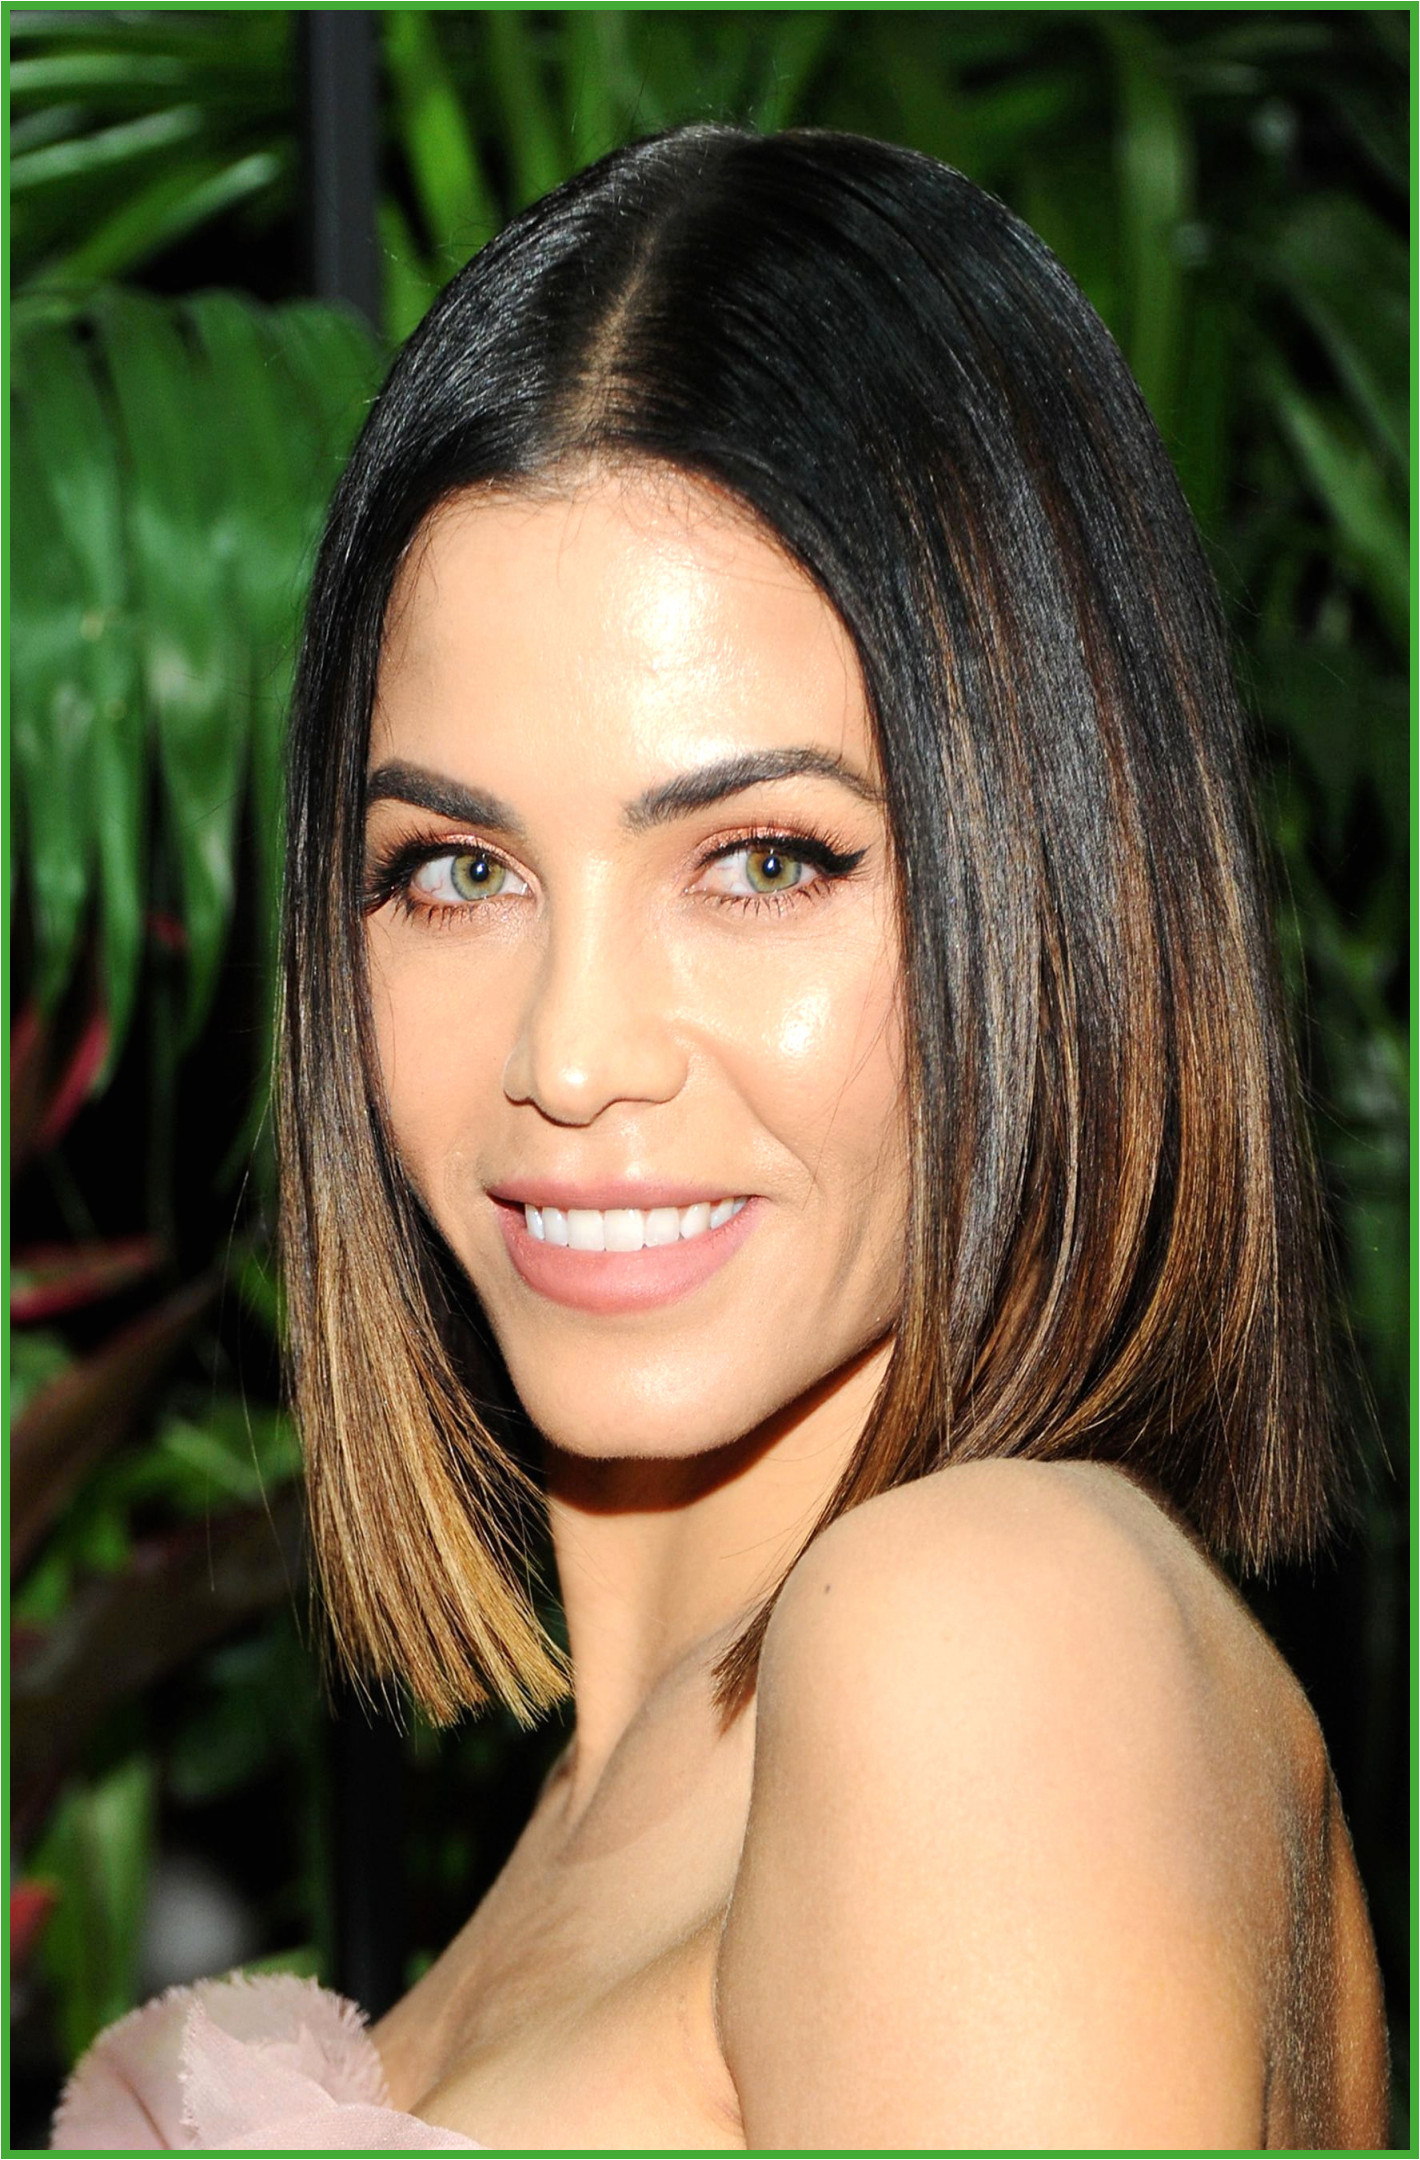 Extraordinary Hairstyles for Men Luxury Haircuts 0d to Her with Short Hairstyles for Women